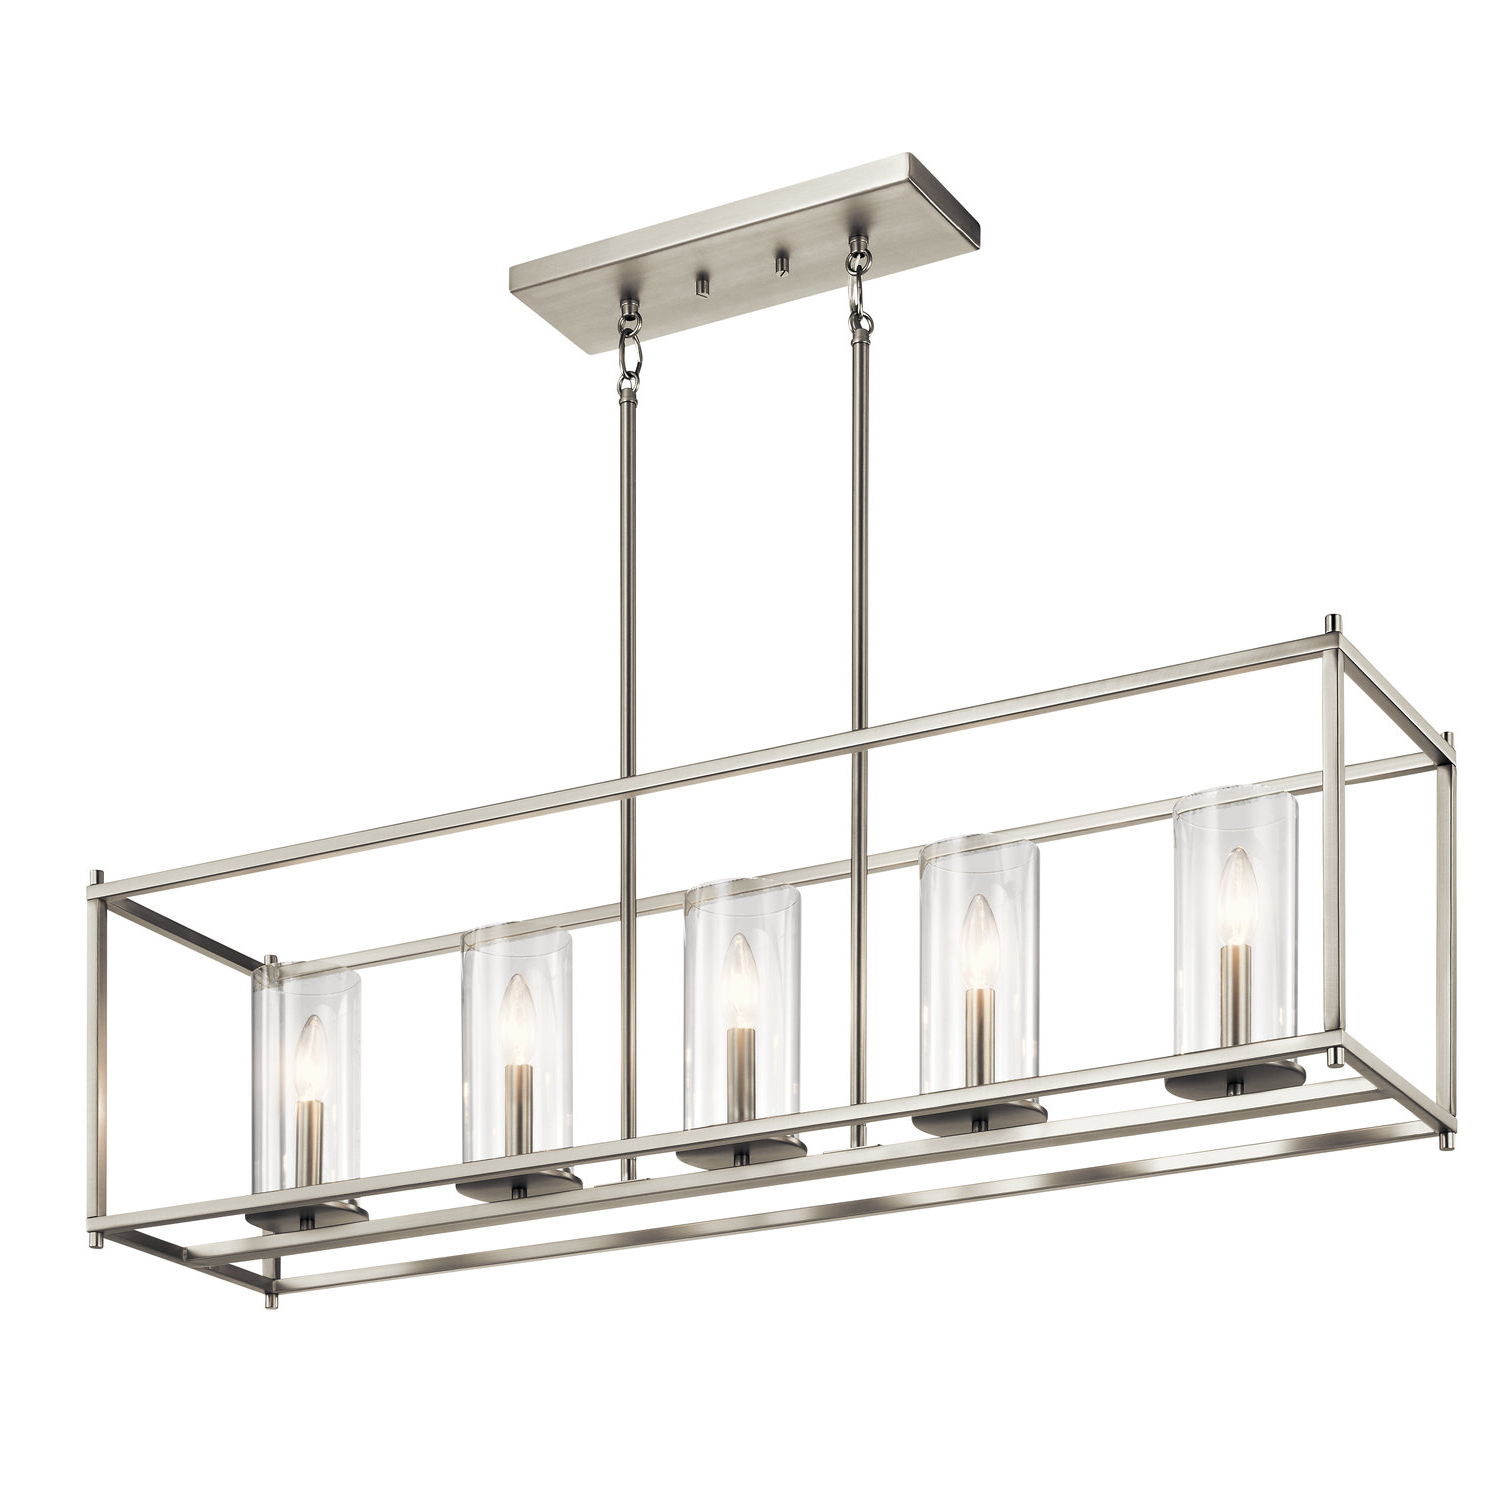 Zipcode Design Chelsie 5 Light Kitchen Island Pendant Intended For Famous Thorne 5 Light Kitchen Island Pendants (View 20 of 20)